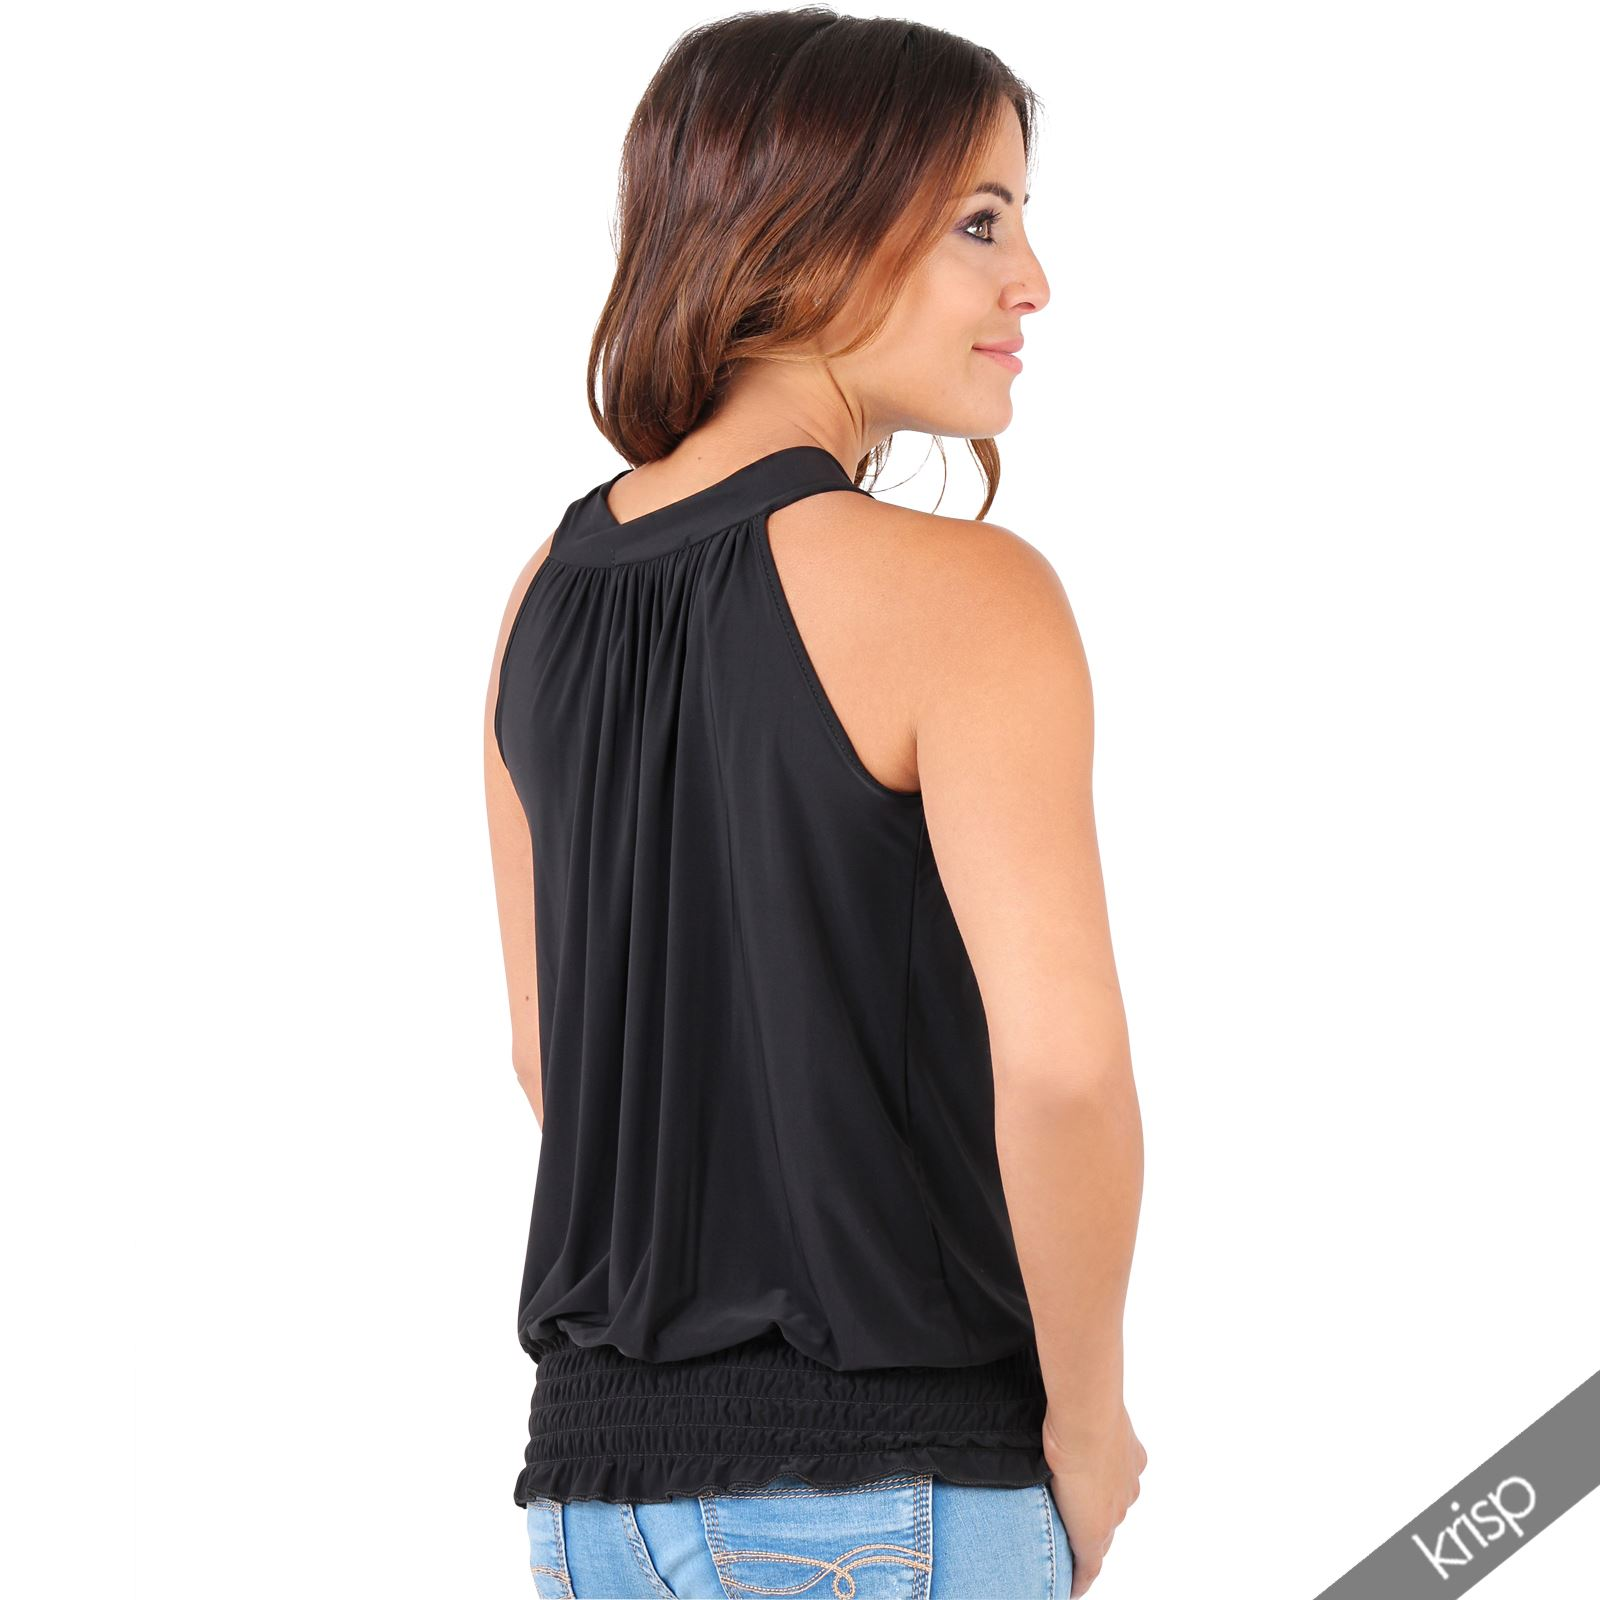 Womens-Ladies-Sleeveless-Blouse-Halter-Neck-Vest-Top-Party-T-Shirt-Plus-Size thumbnail 4